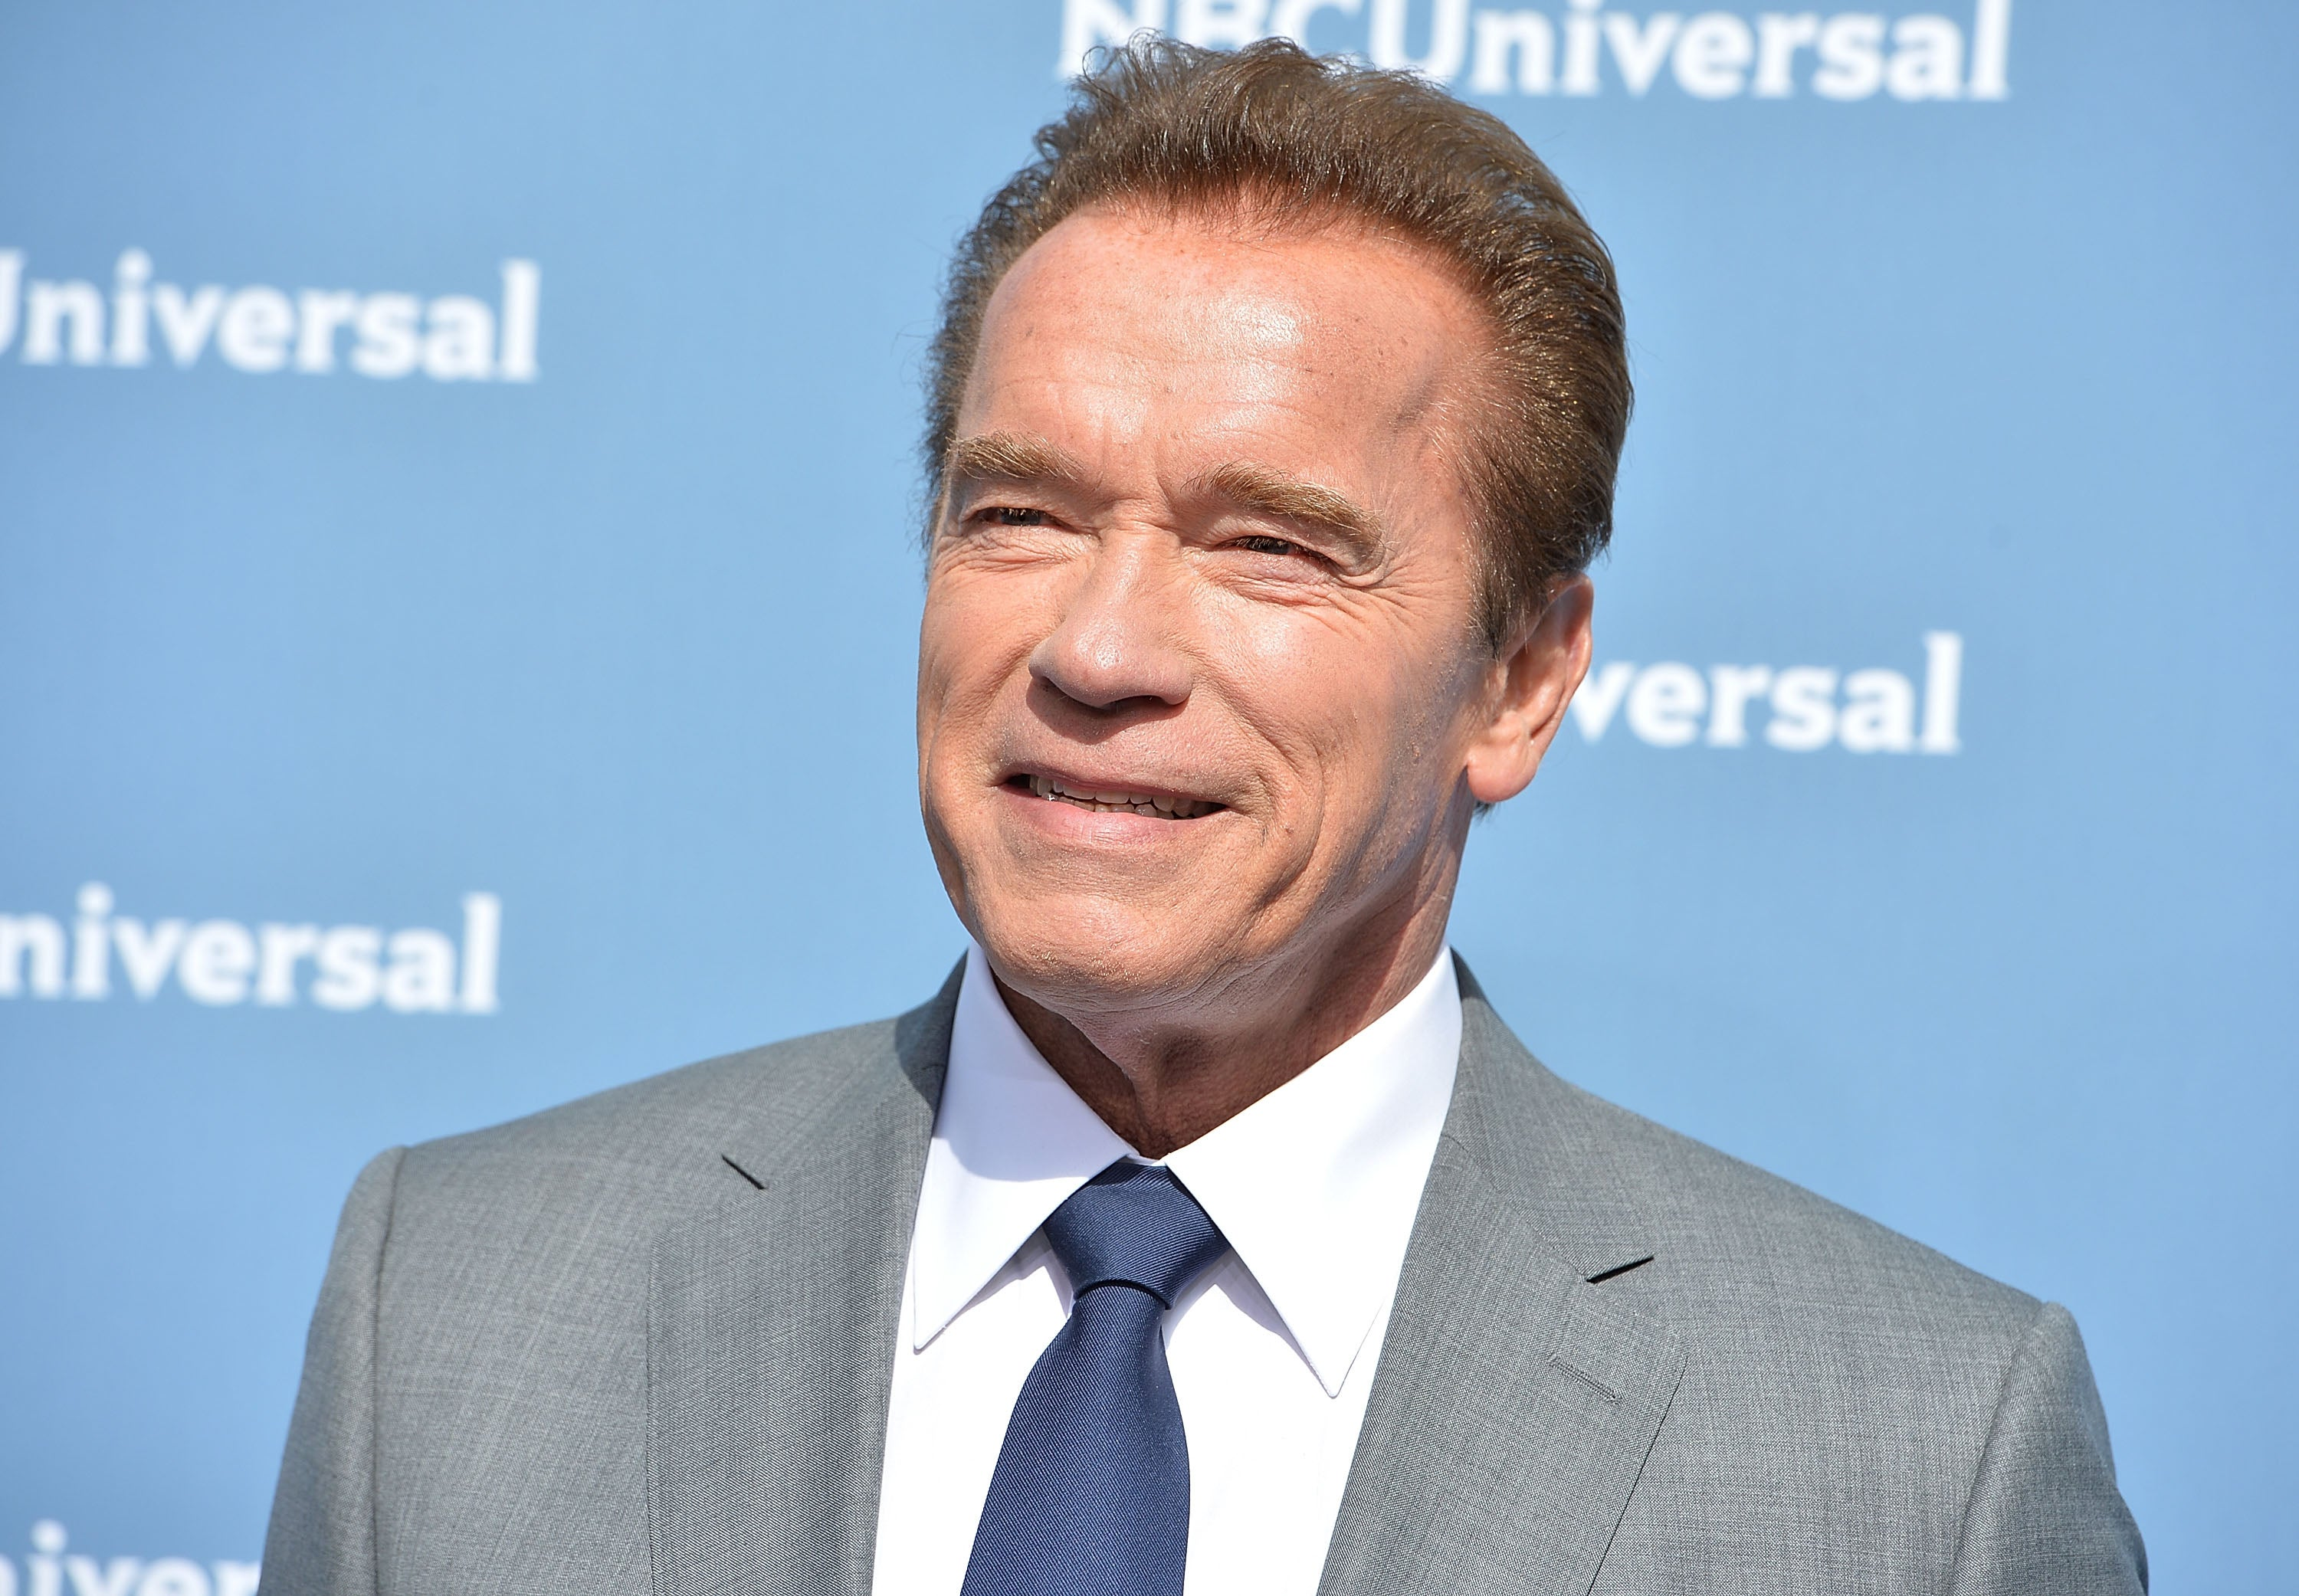 Arnold Schwarzenegger Heads Home After Open-Heart Surgery